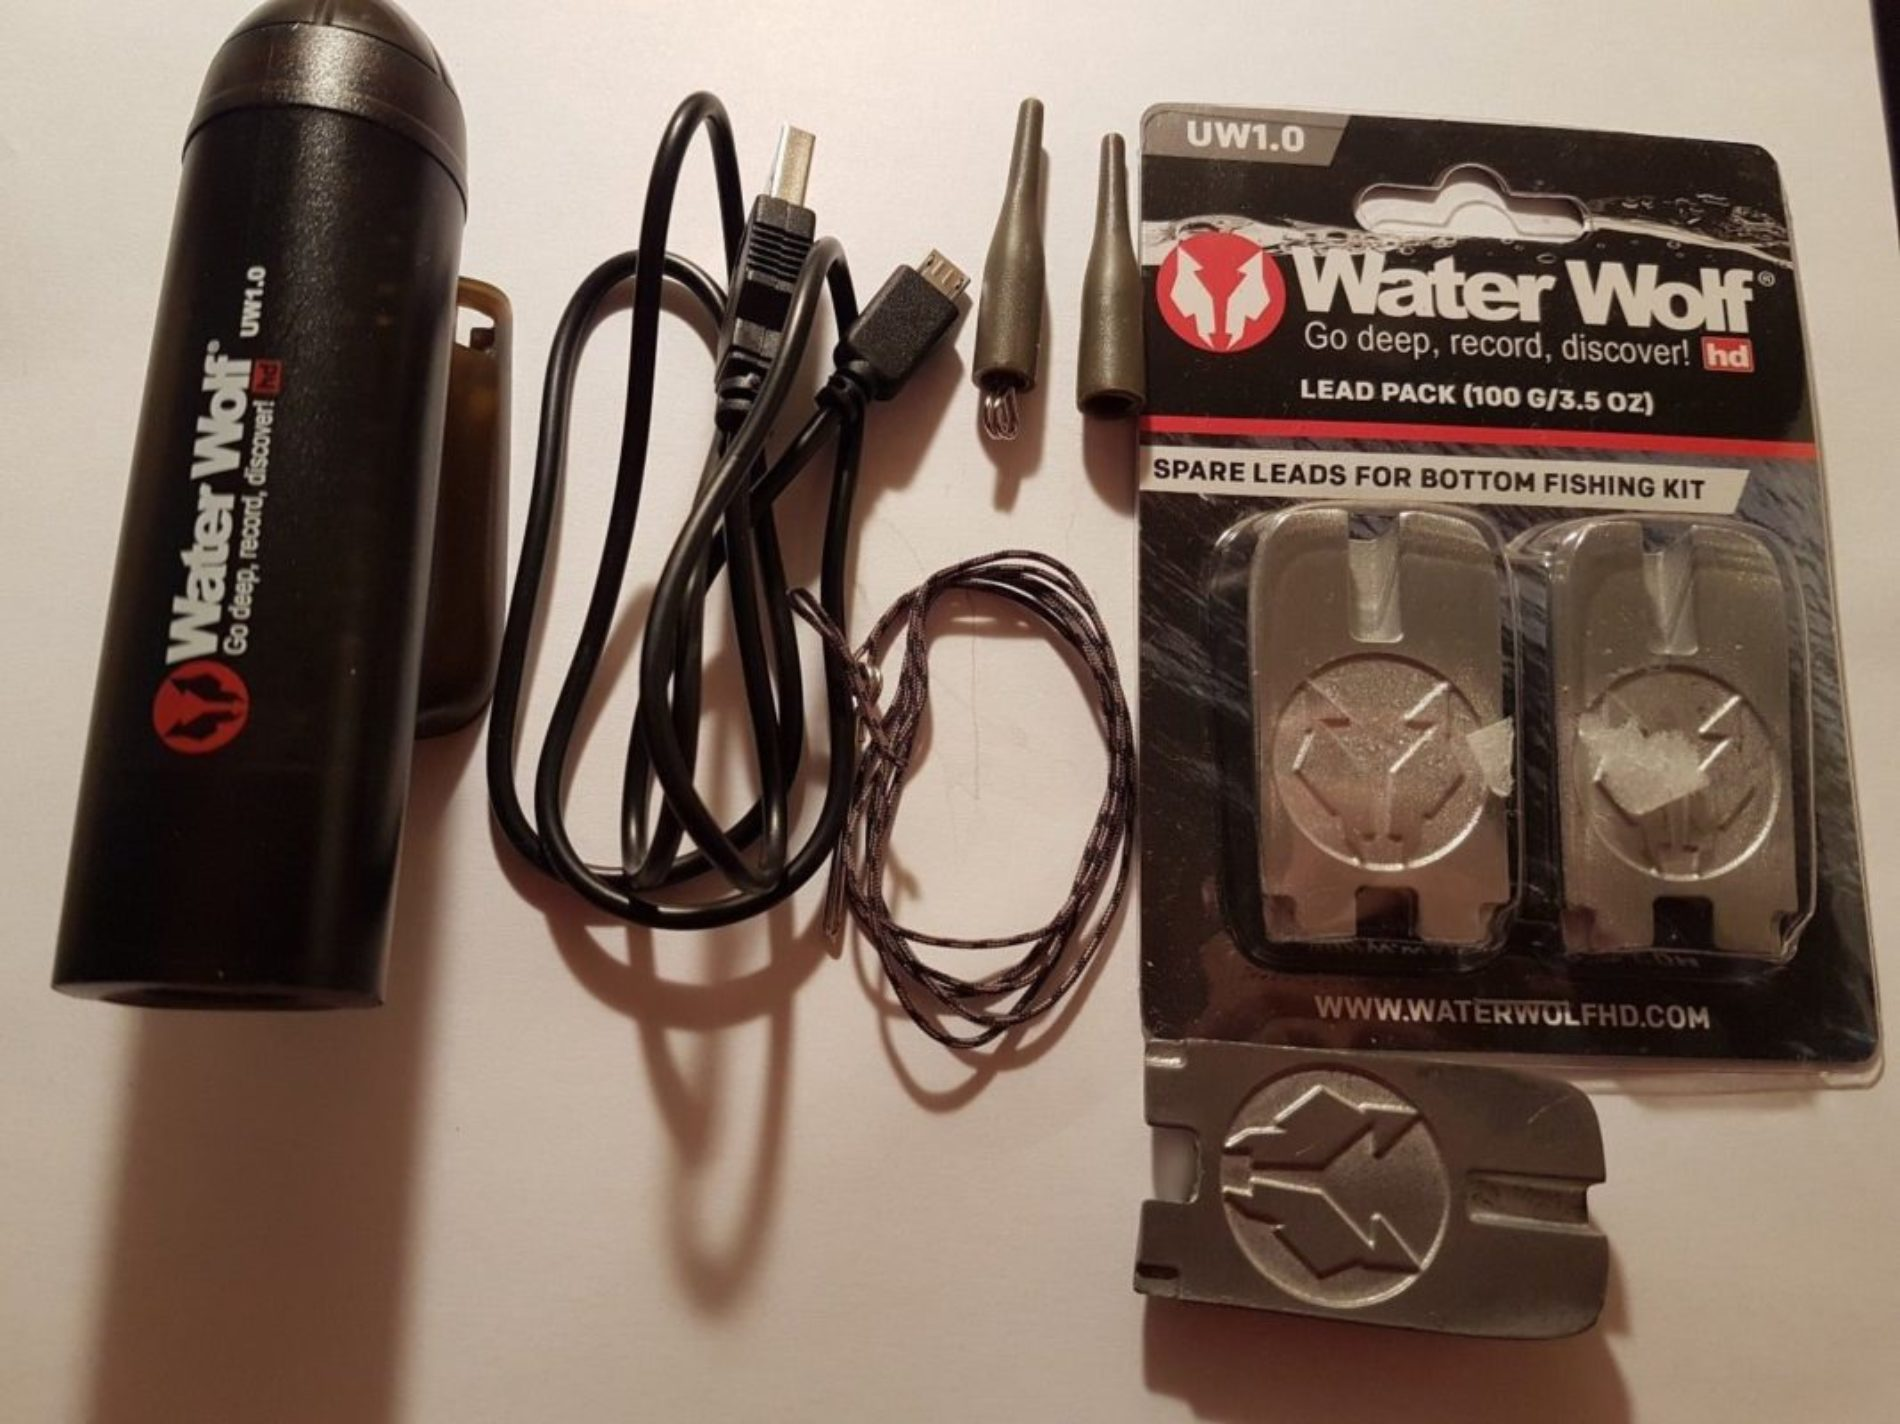 How The Water Wolf is Helping Anglers Catch More – Gear Review